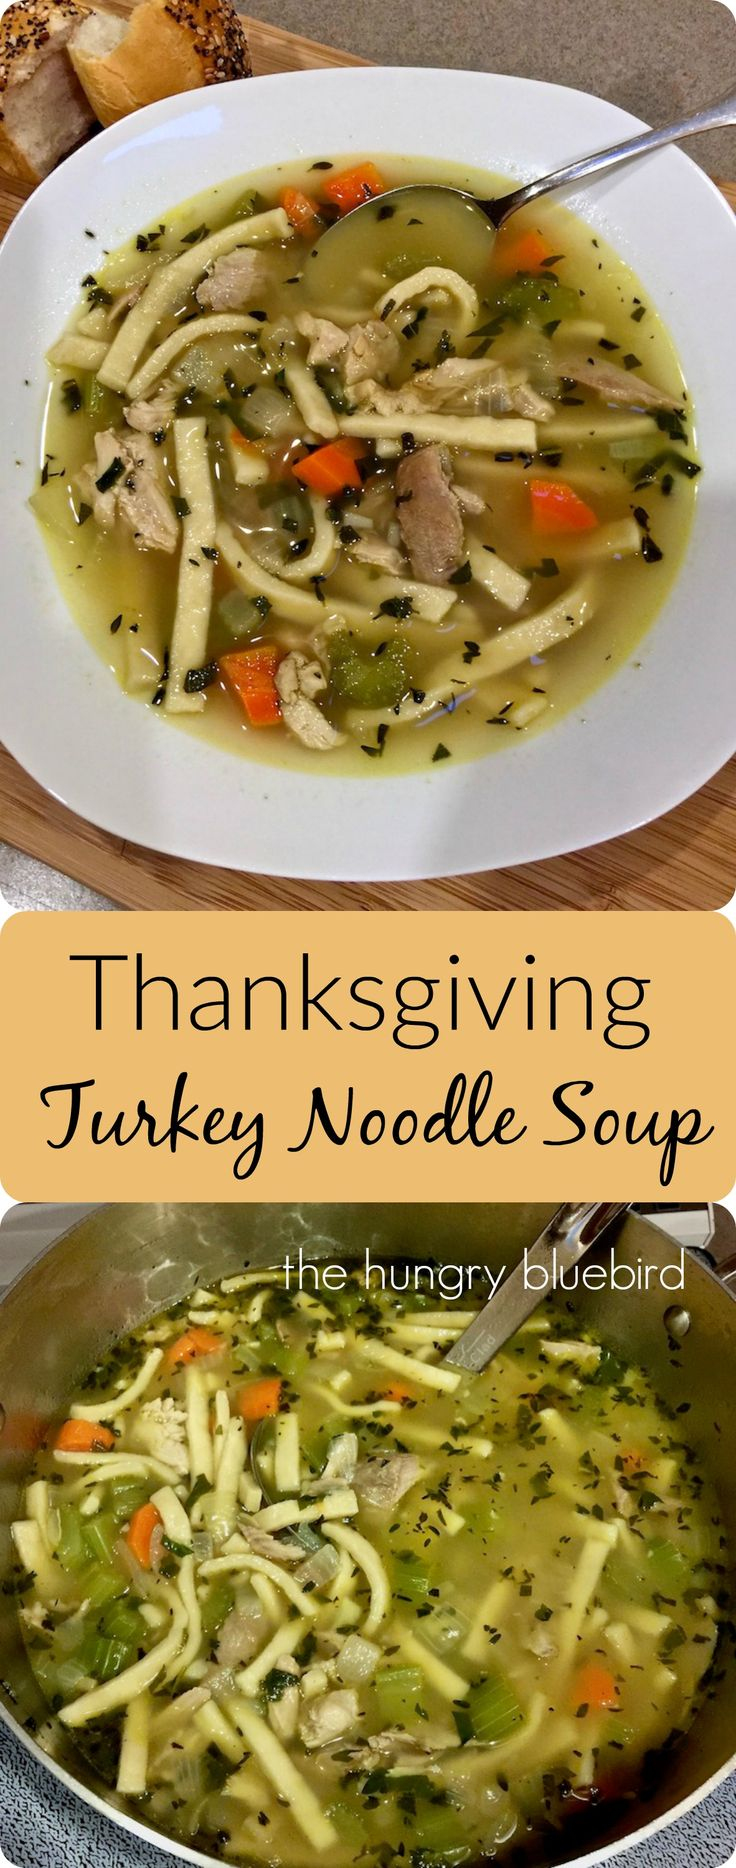 Old-fashioned turkey noodle soup, using your Thanksgiving turkey leftovers, carcass and all.